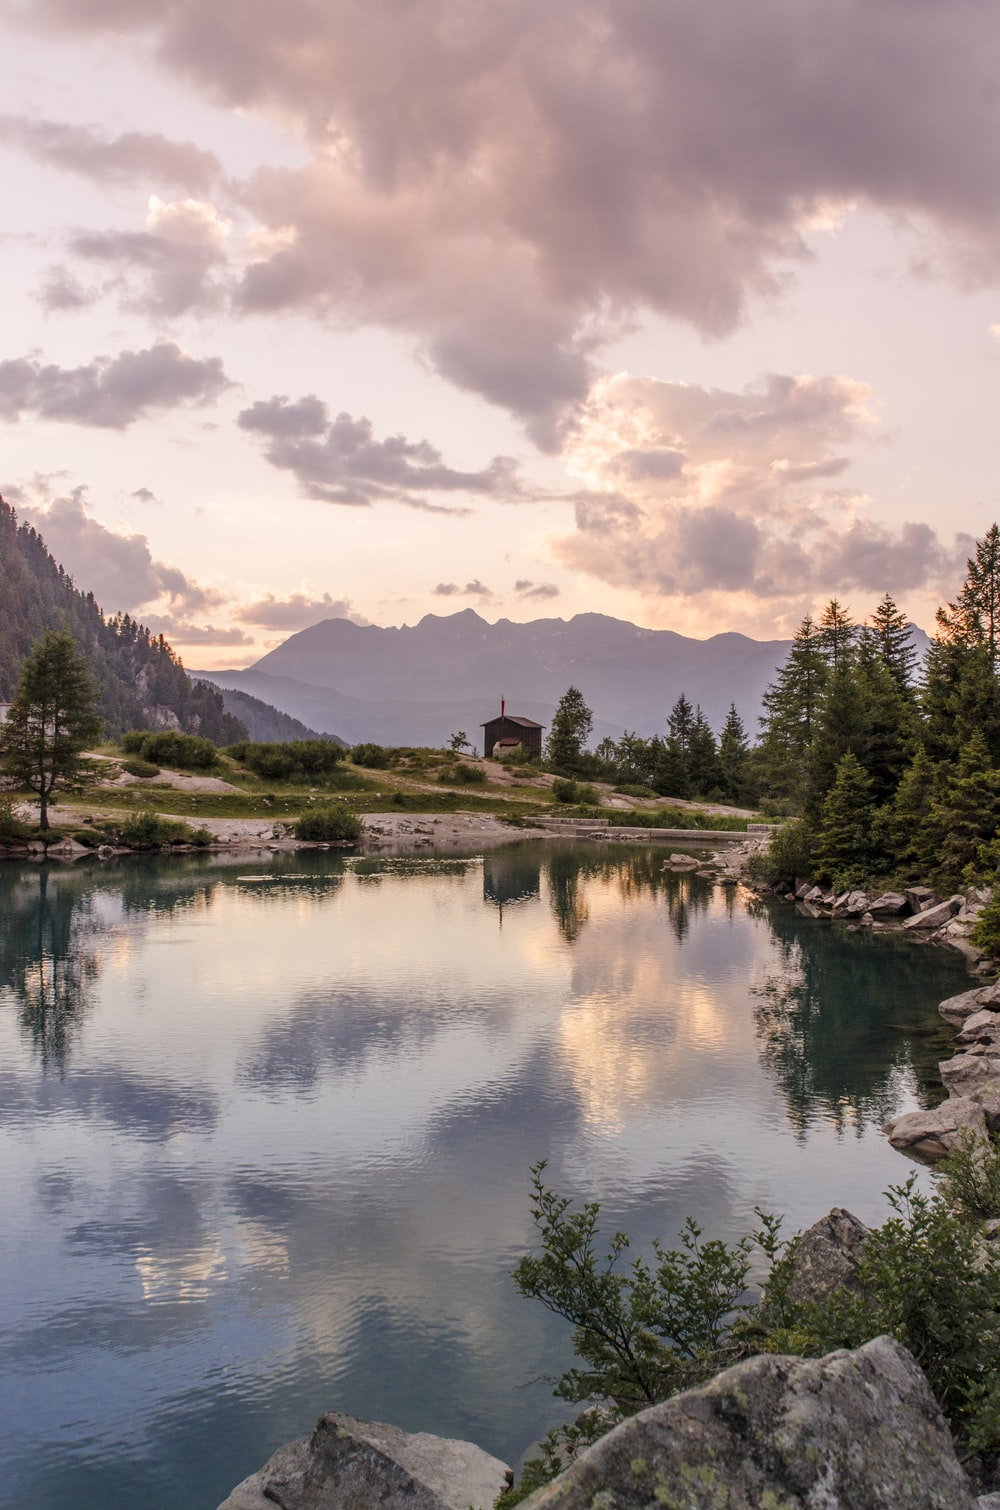 body of water with mountains and trees